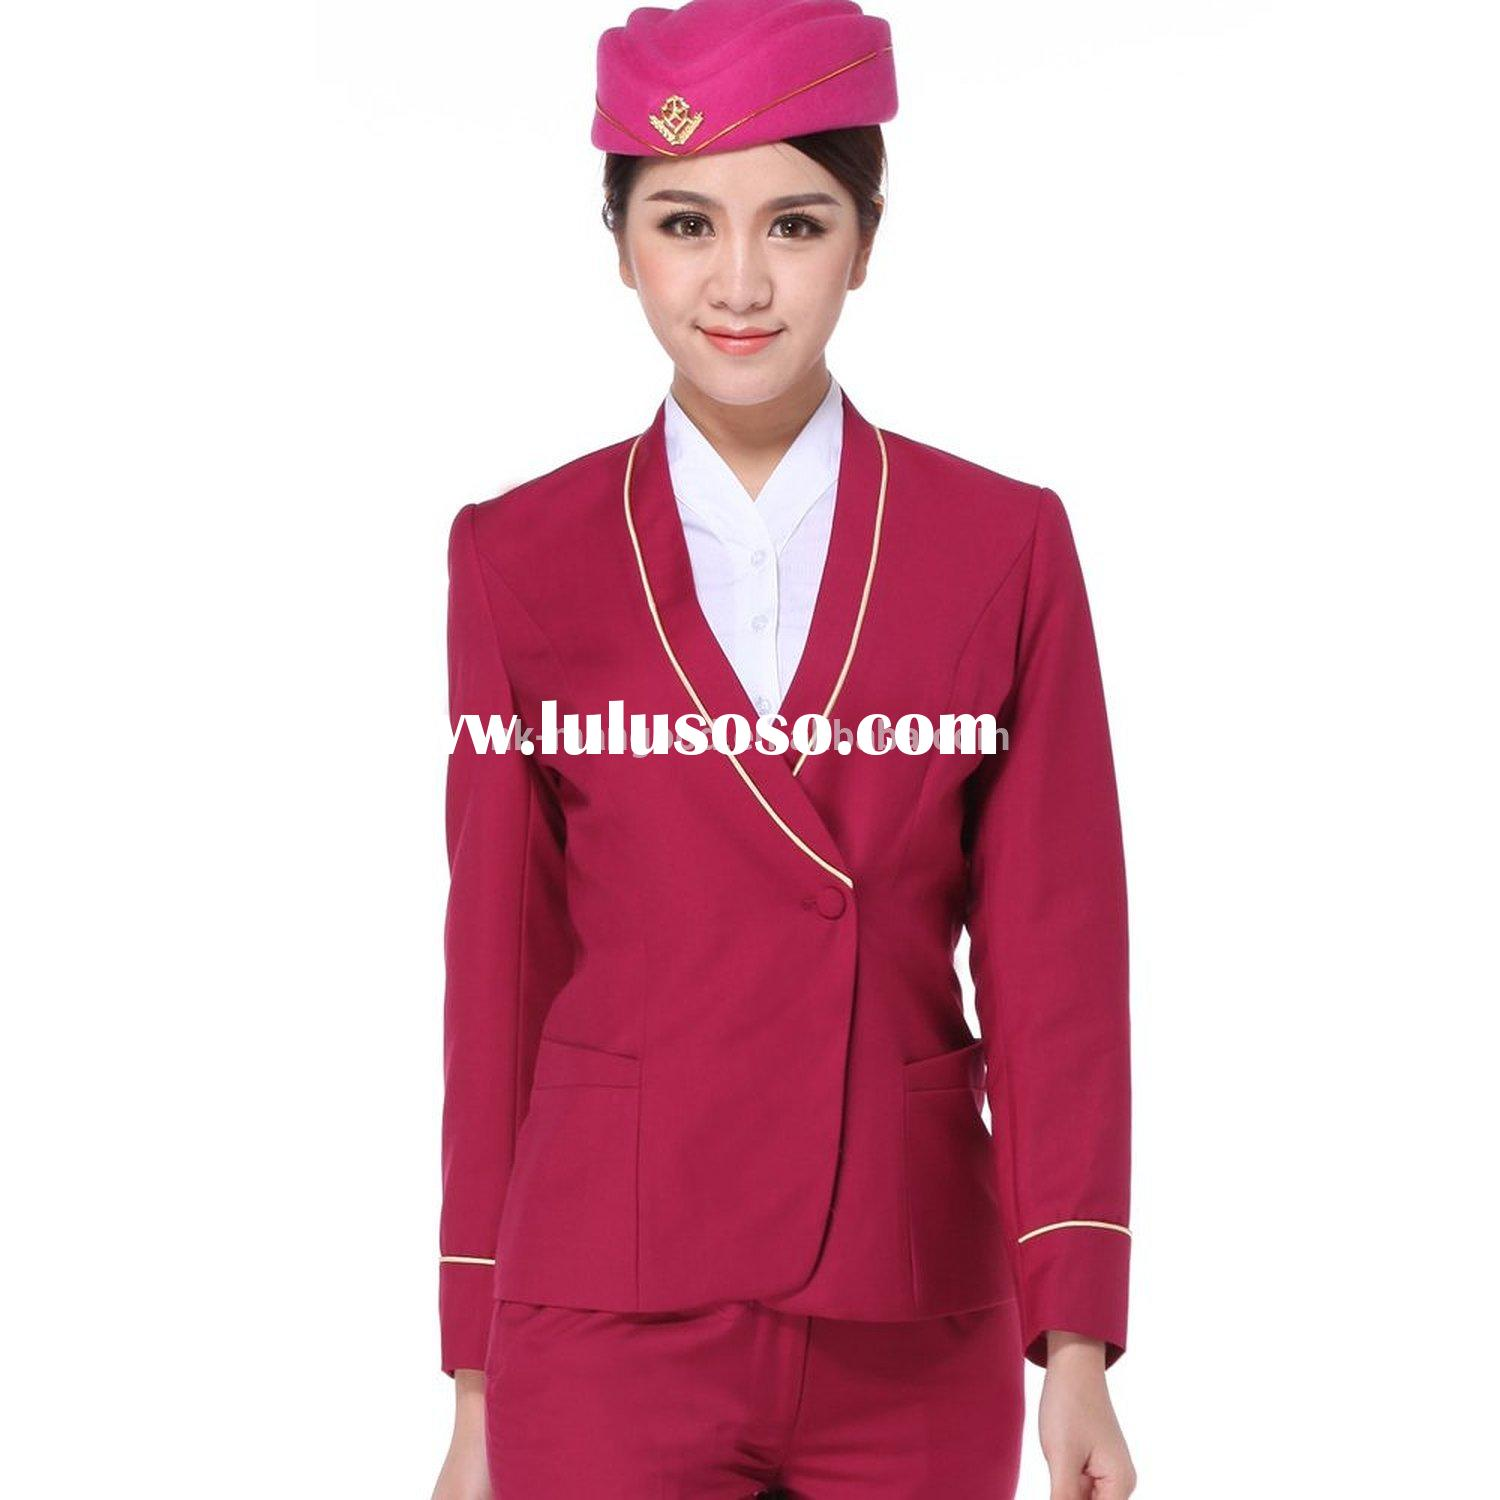 Hign quality wholesale airline uniform for stewardess with OEM